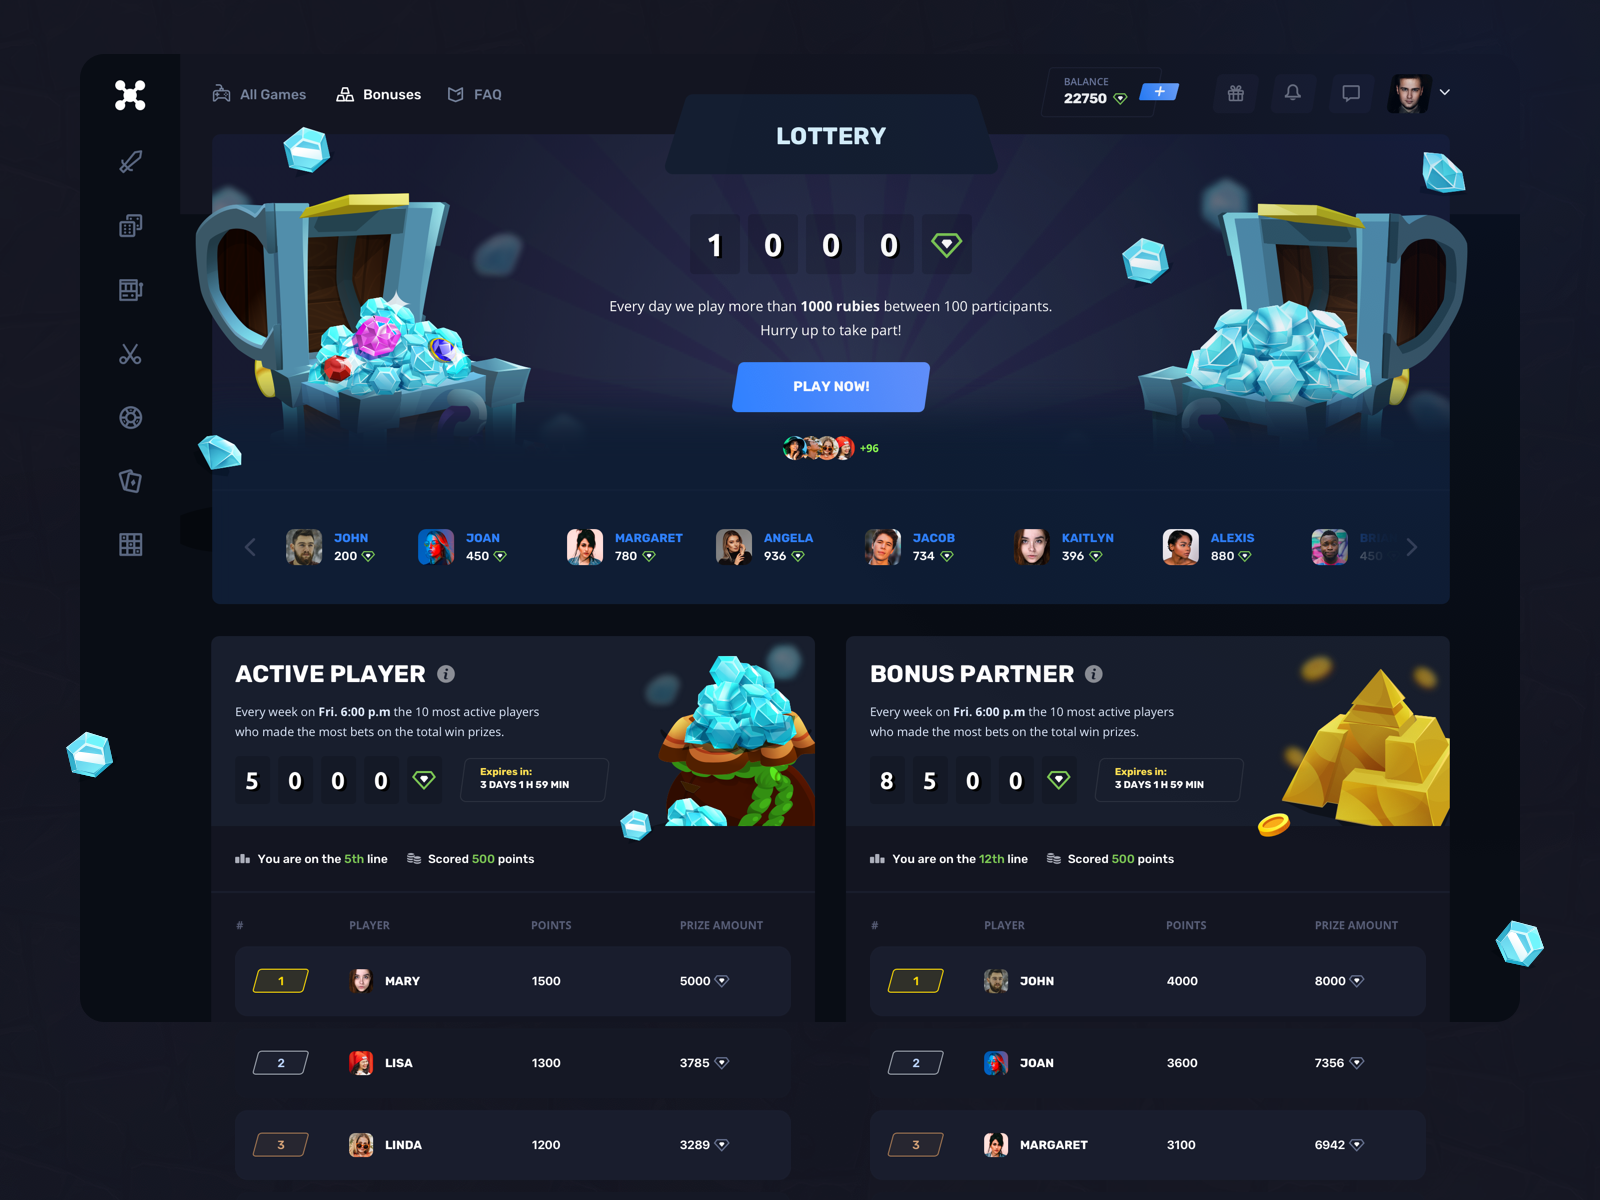 Roulette Gaming Bonuses In 2020 Roulette Games Web Layout Design